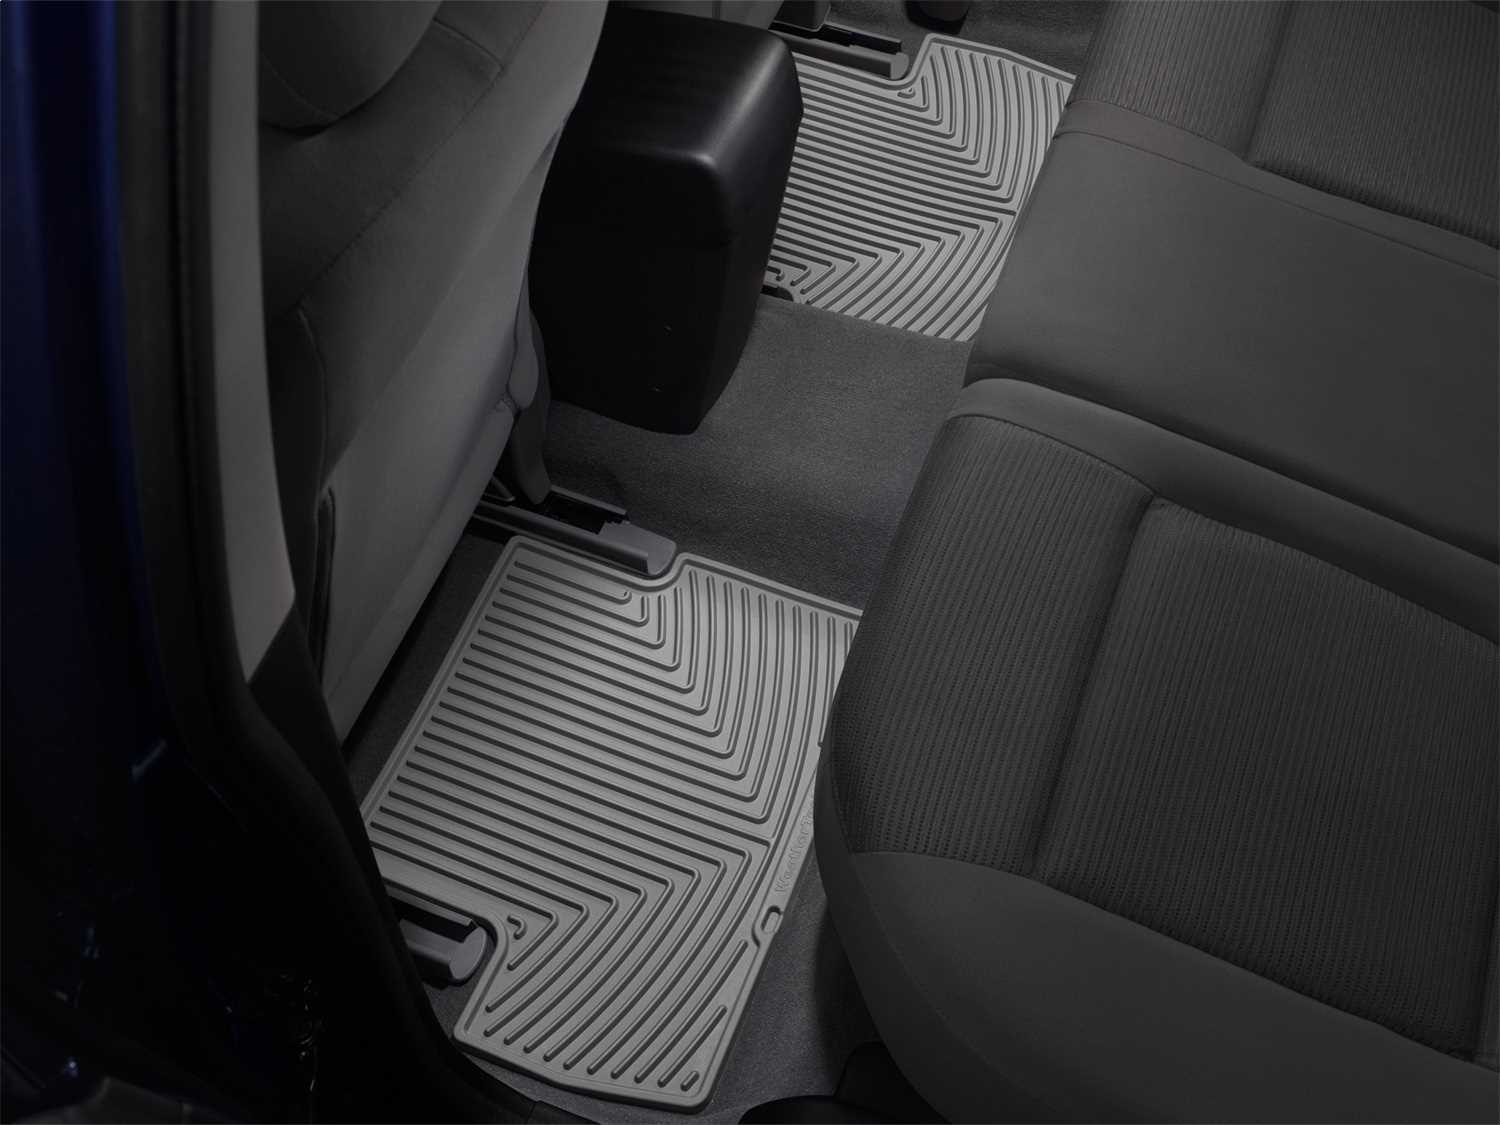 W99GR-W100GR WeatherTech All Weather Floor Mats